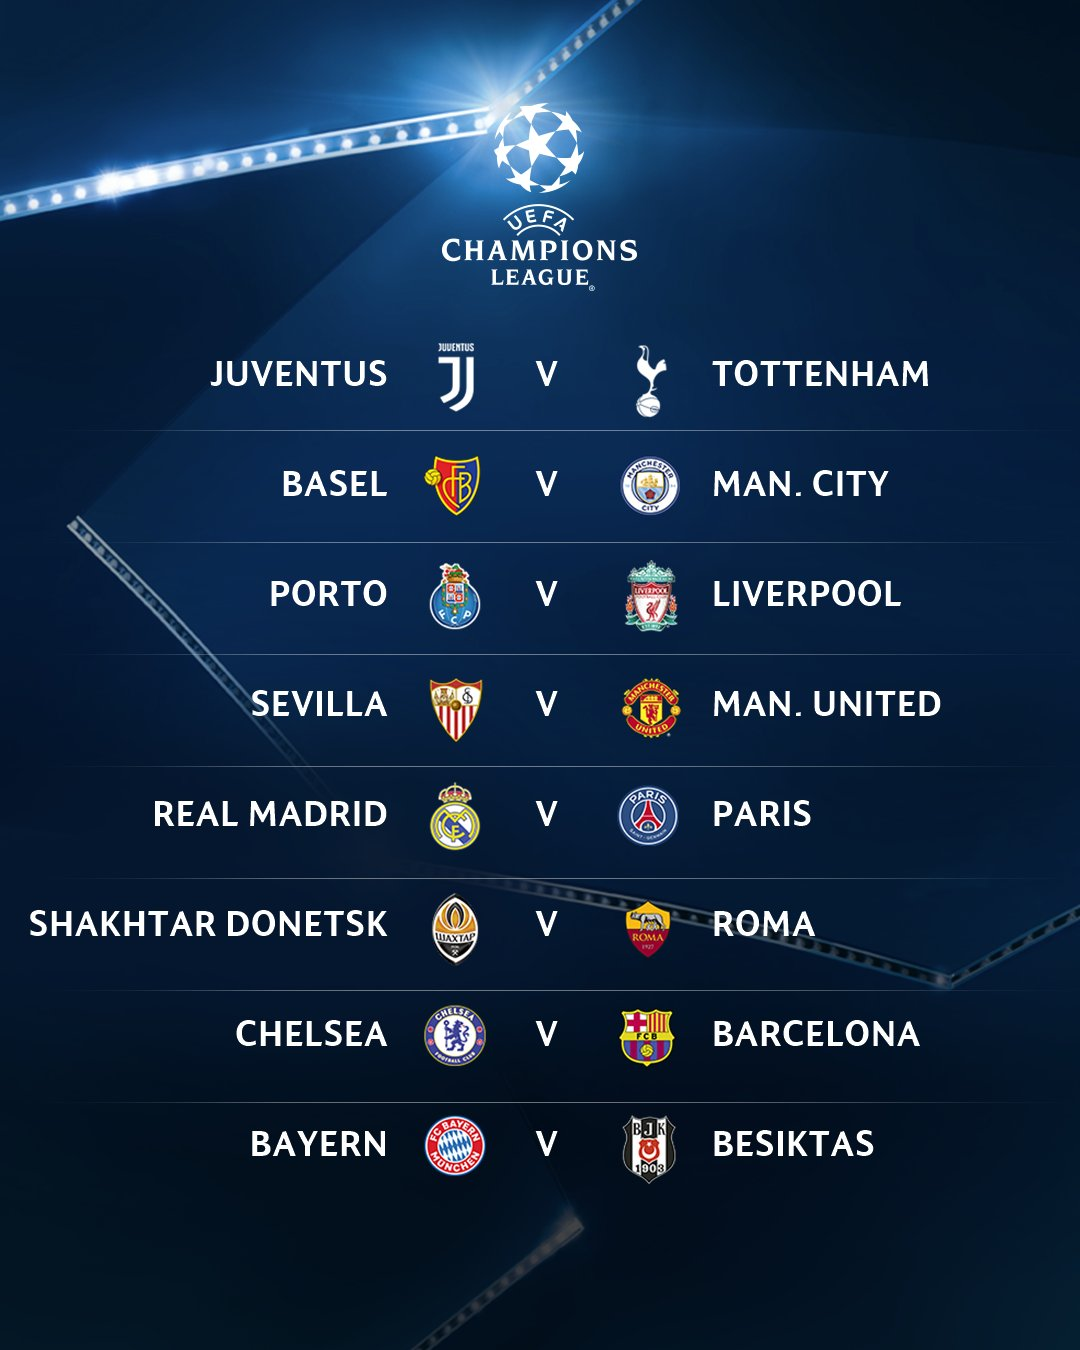 UCL R16: Chelsea Draw Barca, Real Madrid To Face PSG, United Get Sevilla